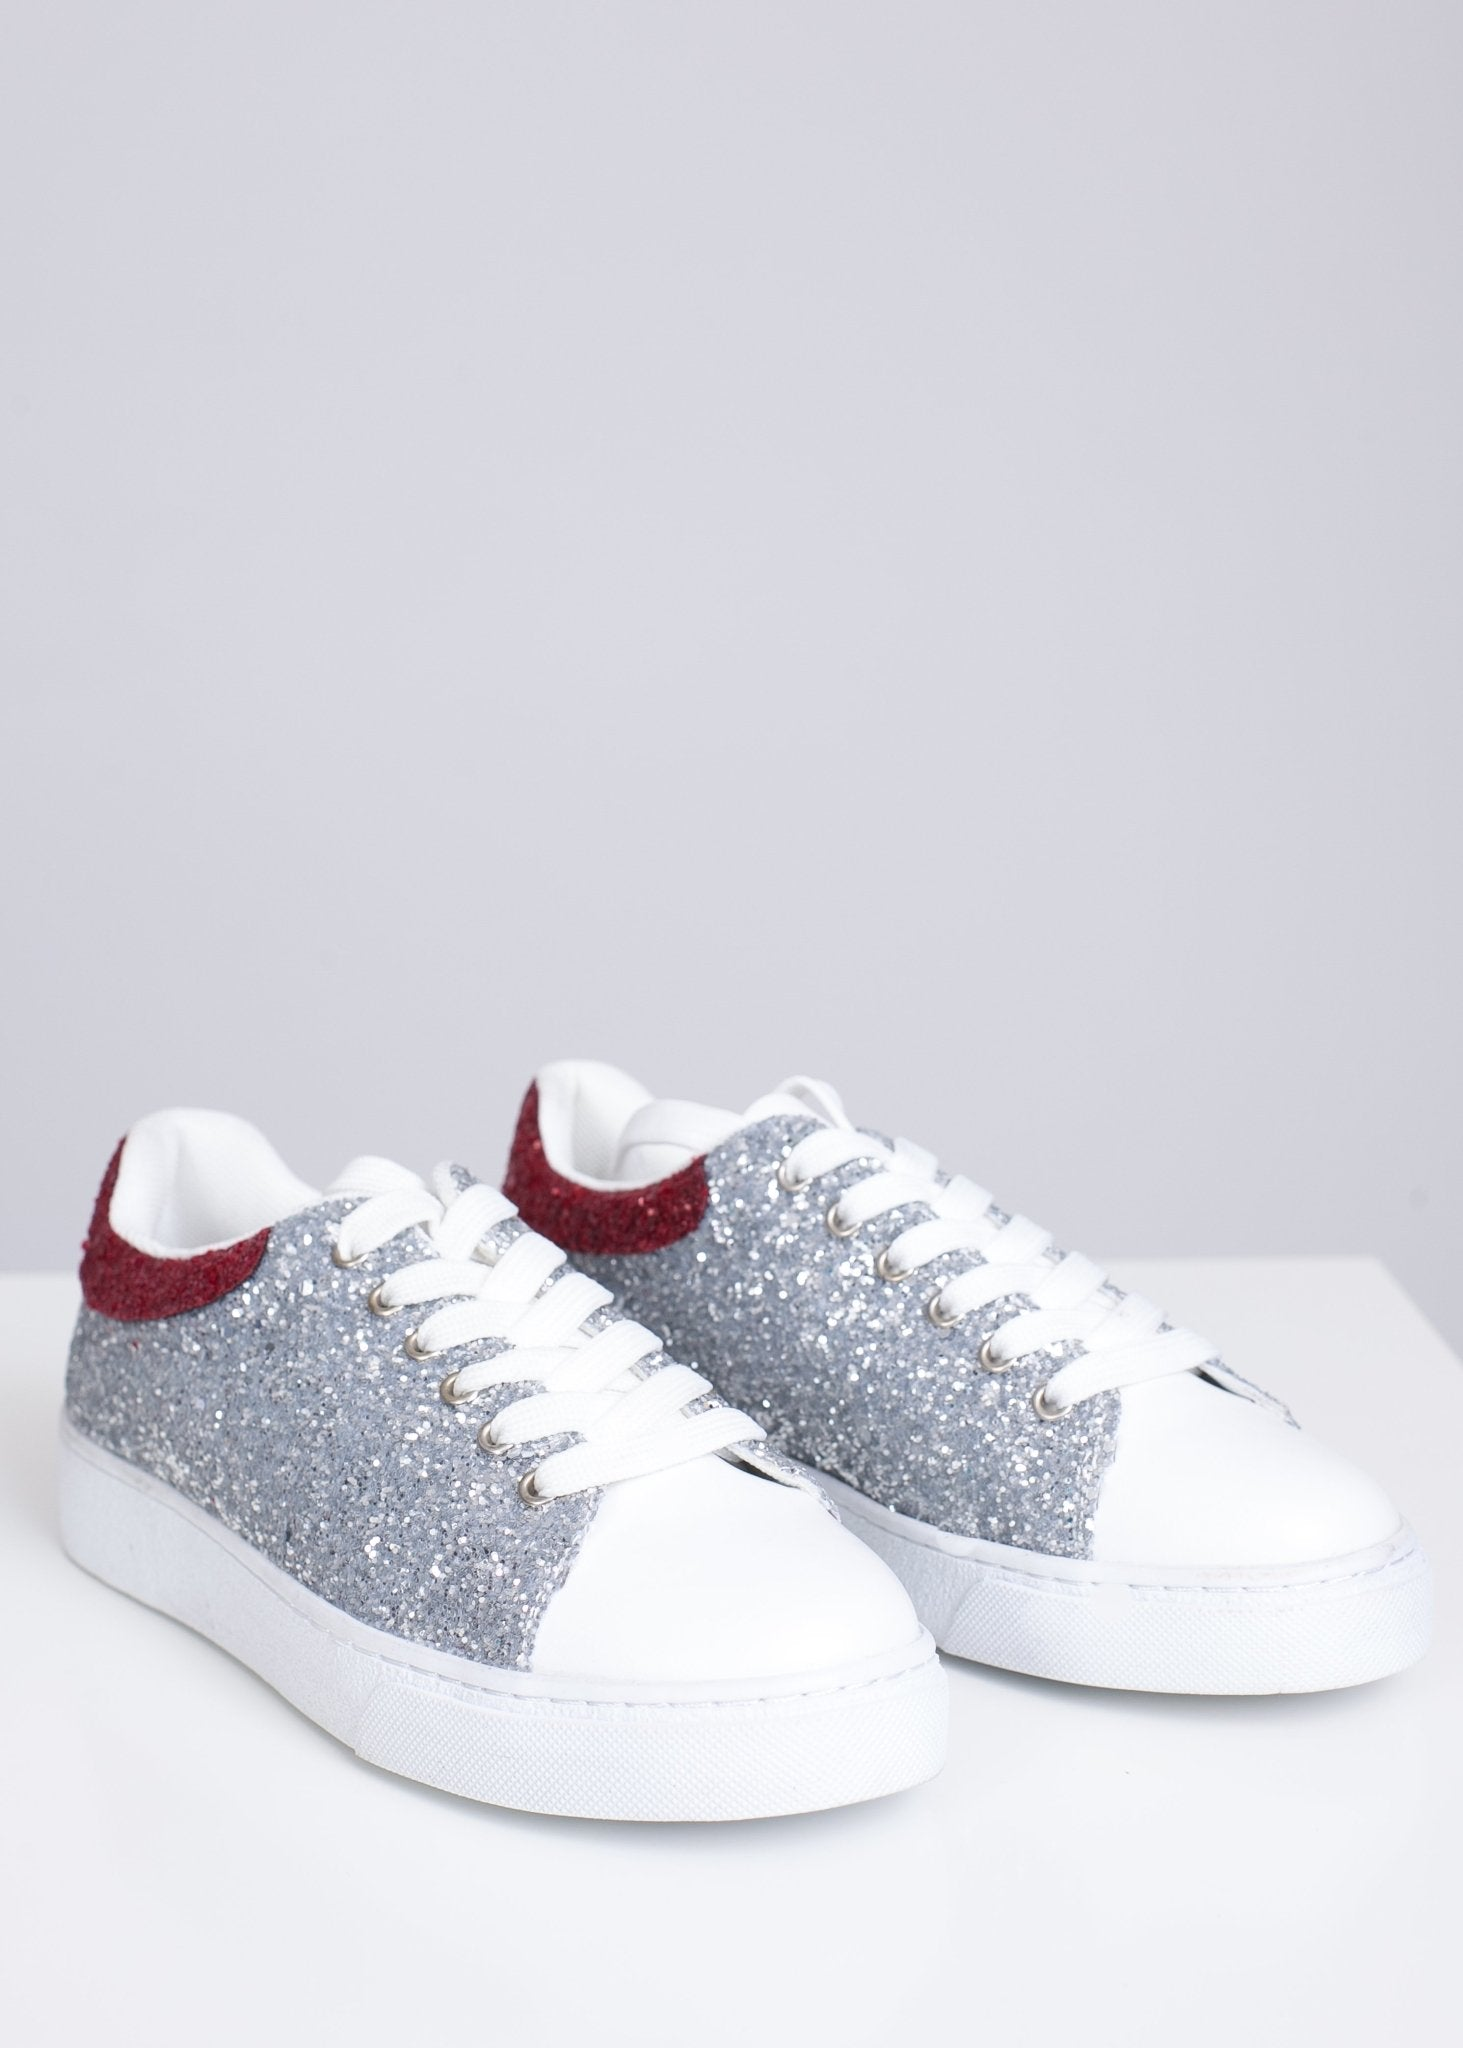 Alice Silver Trainers - The Walk in Wardrobe